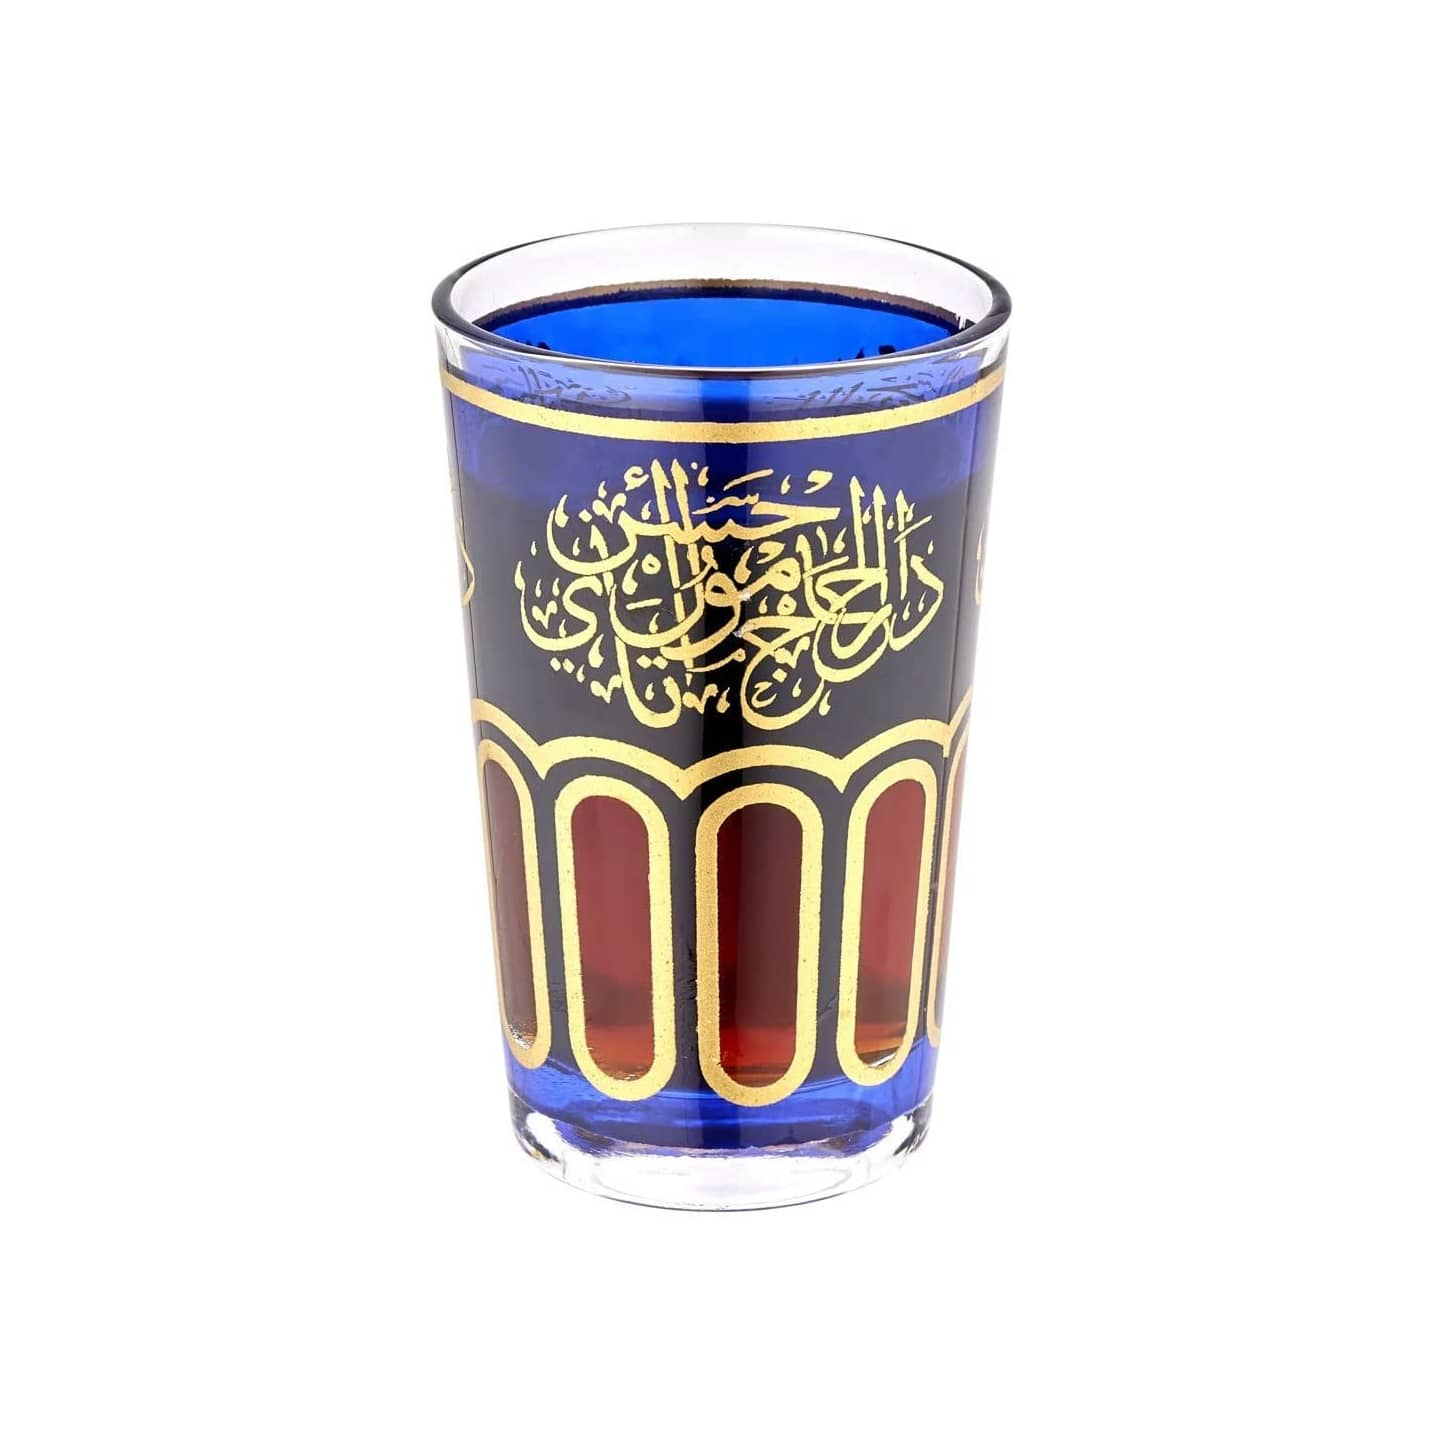 Sultan Tea Limited Edition Moroccan Tea Glasses in Blue Set of 6